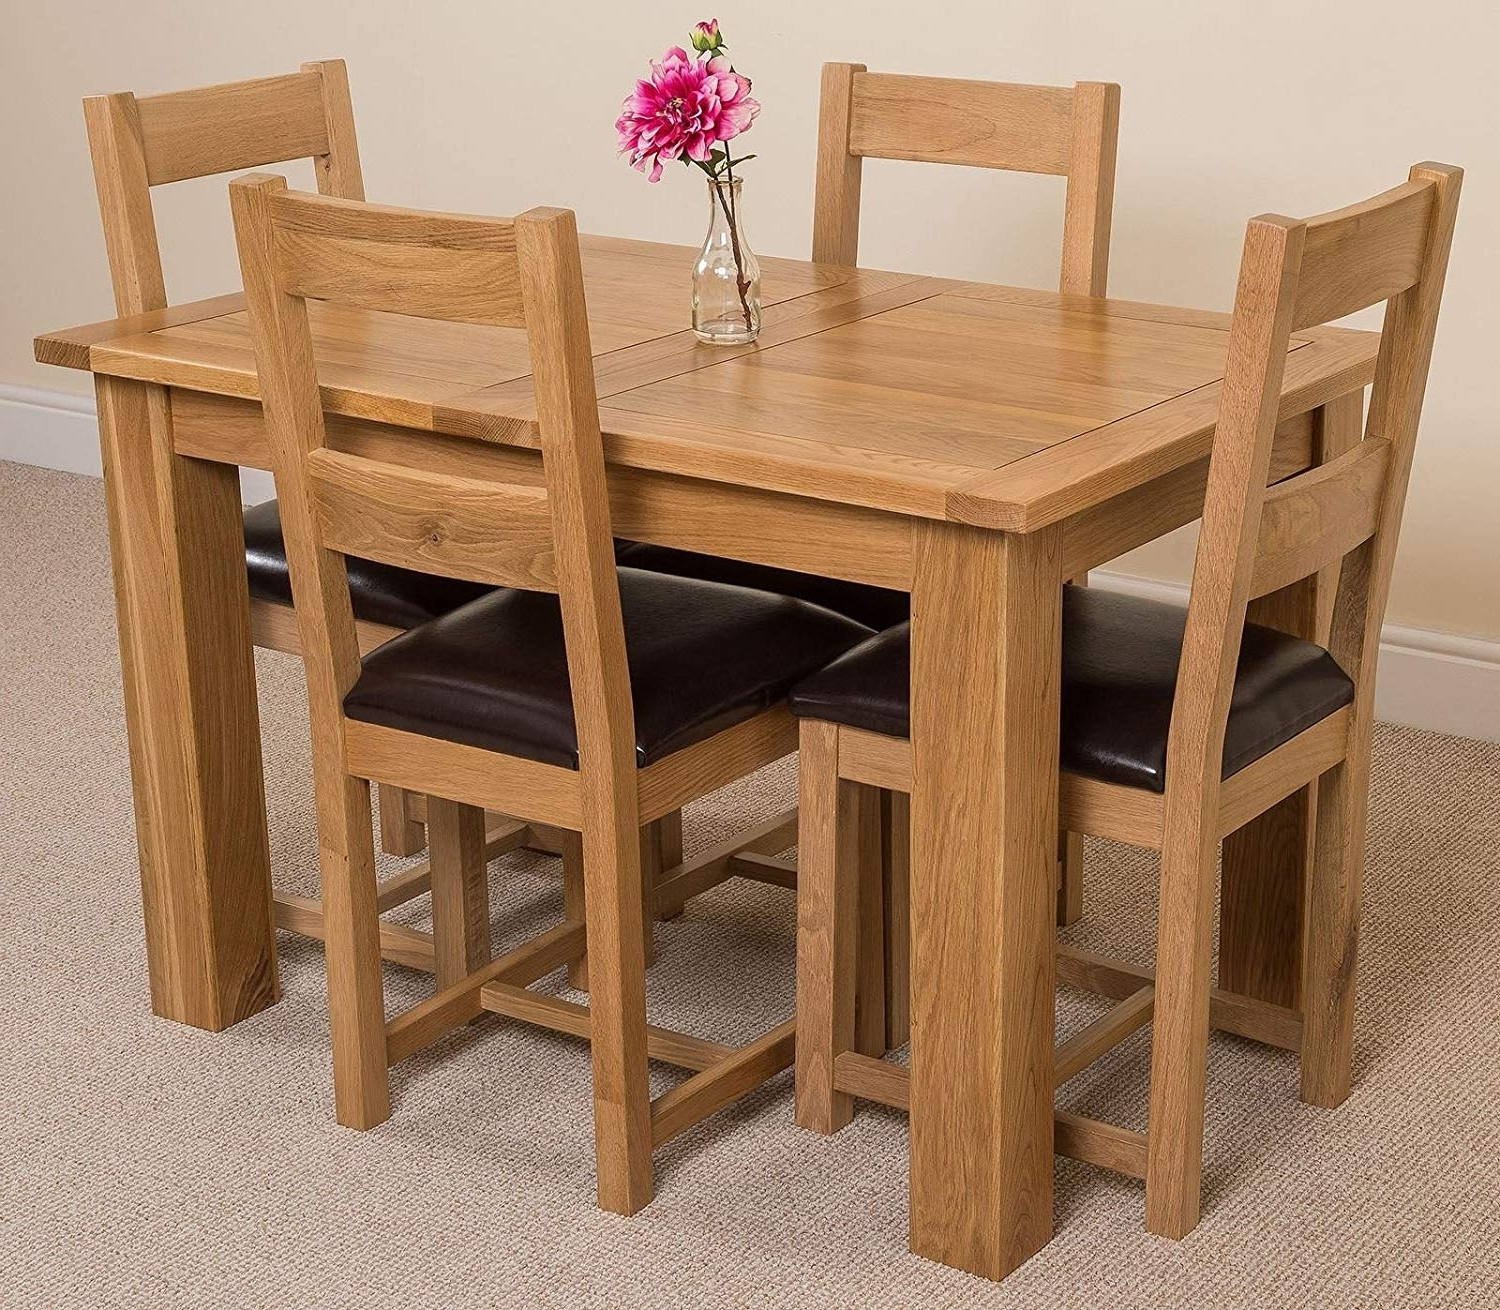 Small Oak Dining Tables With Regard To Famous Hampton Solid Oak (120 160 Cm) Extending Dining Table & 4 Lincoln (View 21 of 25)